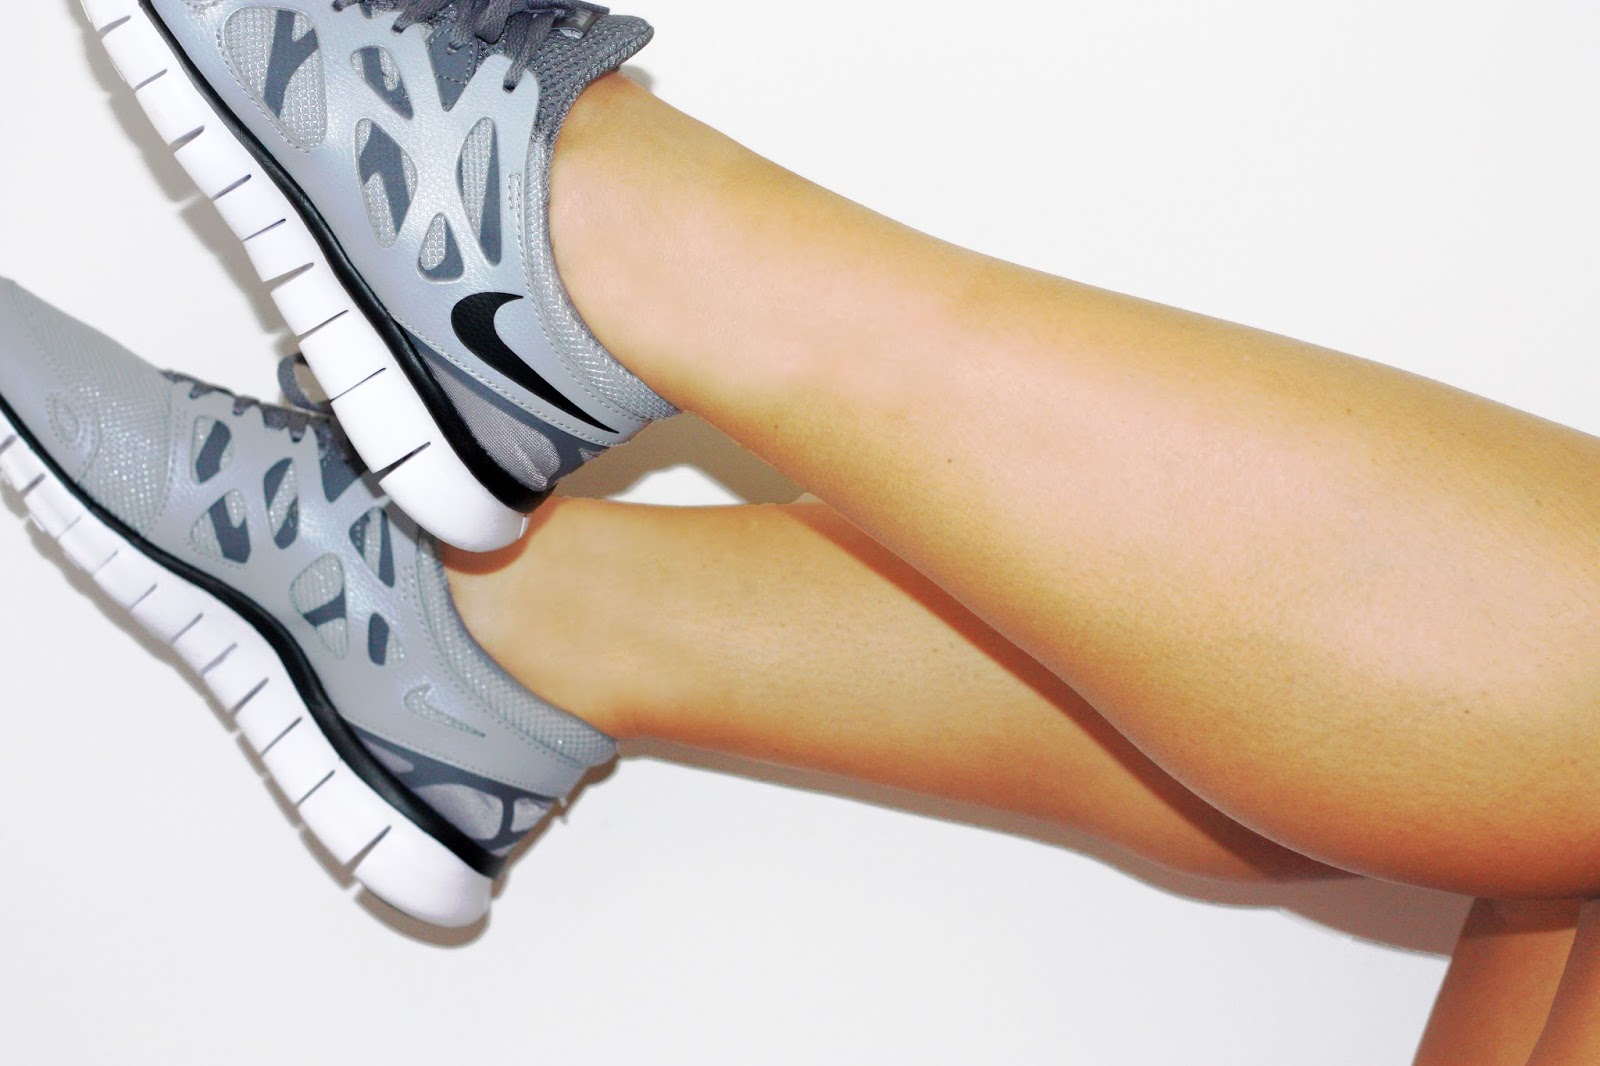 FITNESS | WHICH GYM TRAINERS SHOULD I BUY?